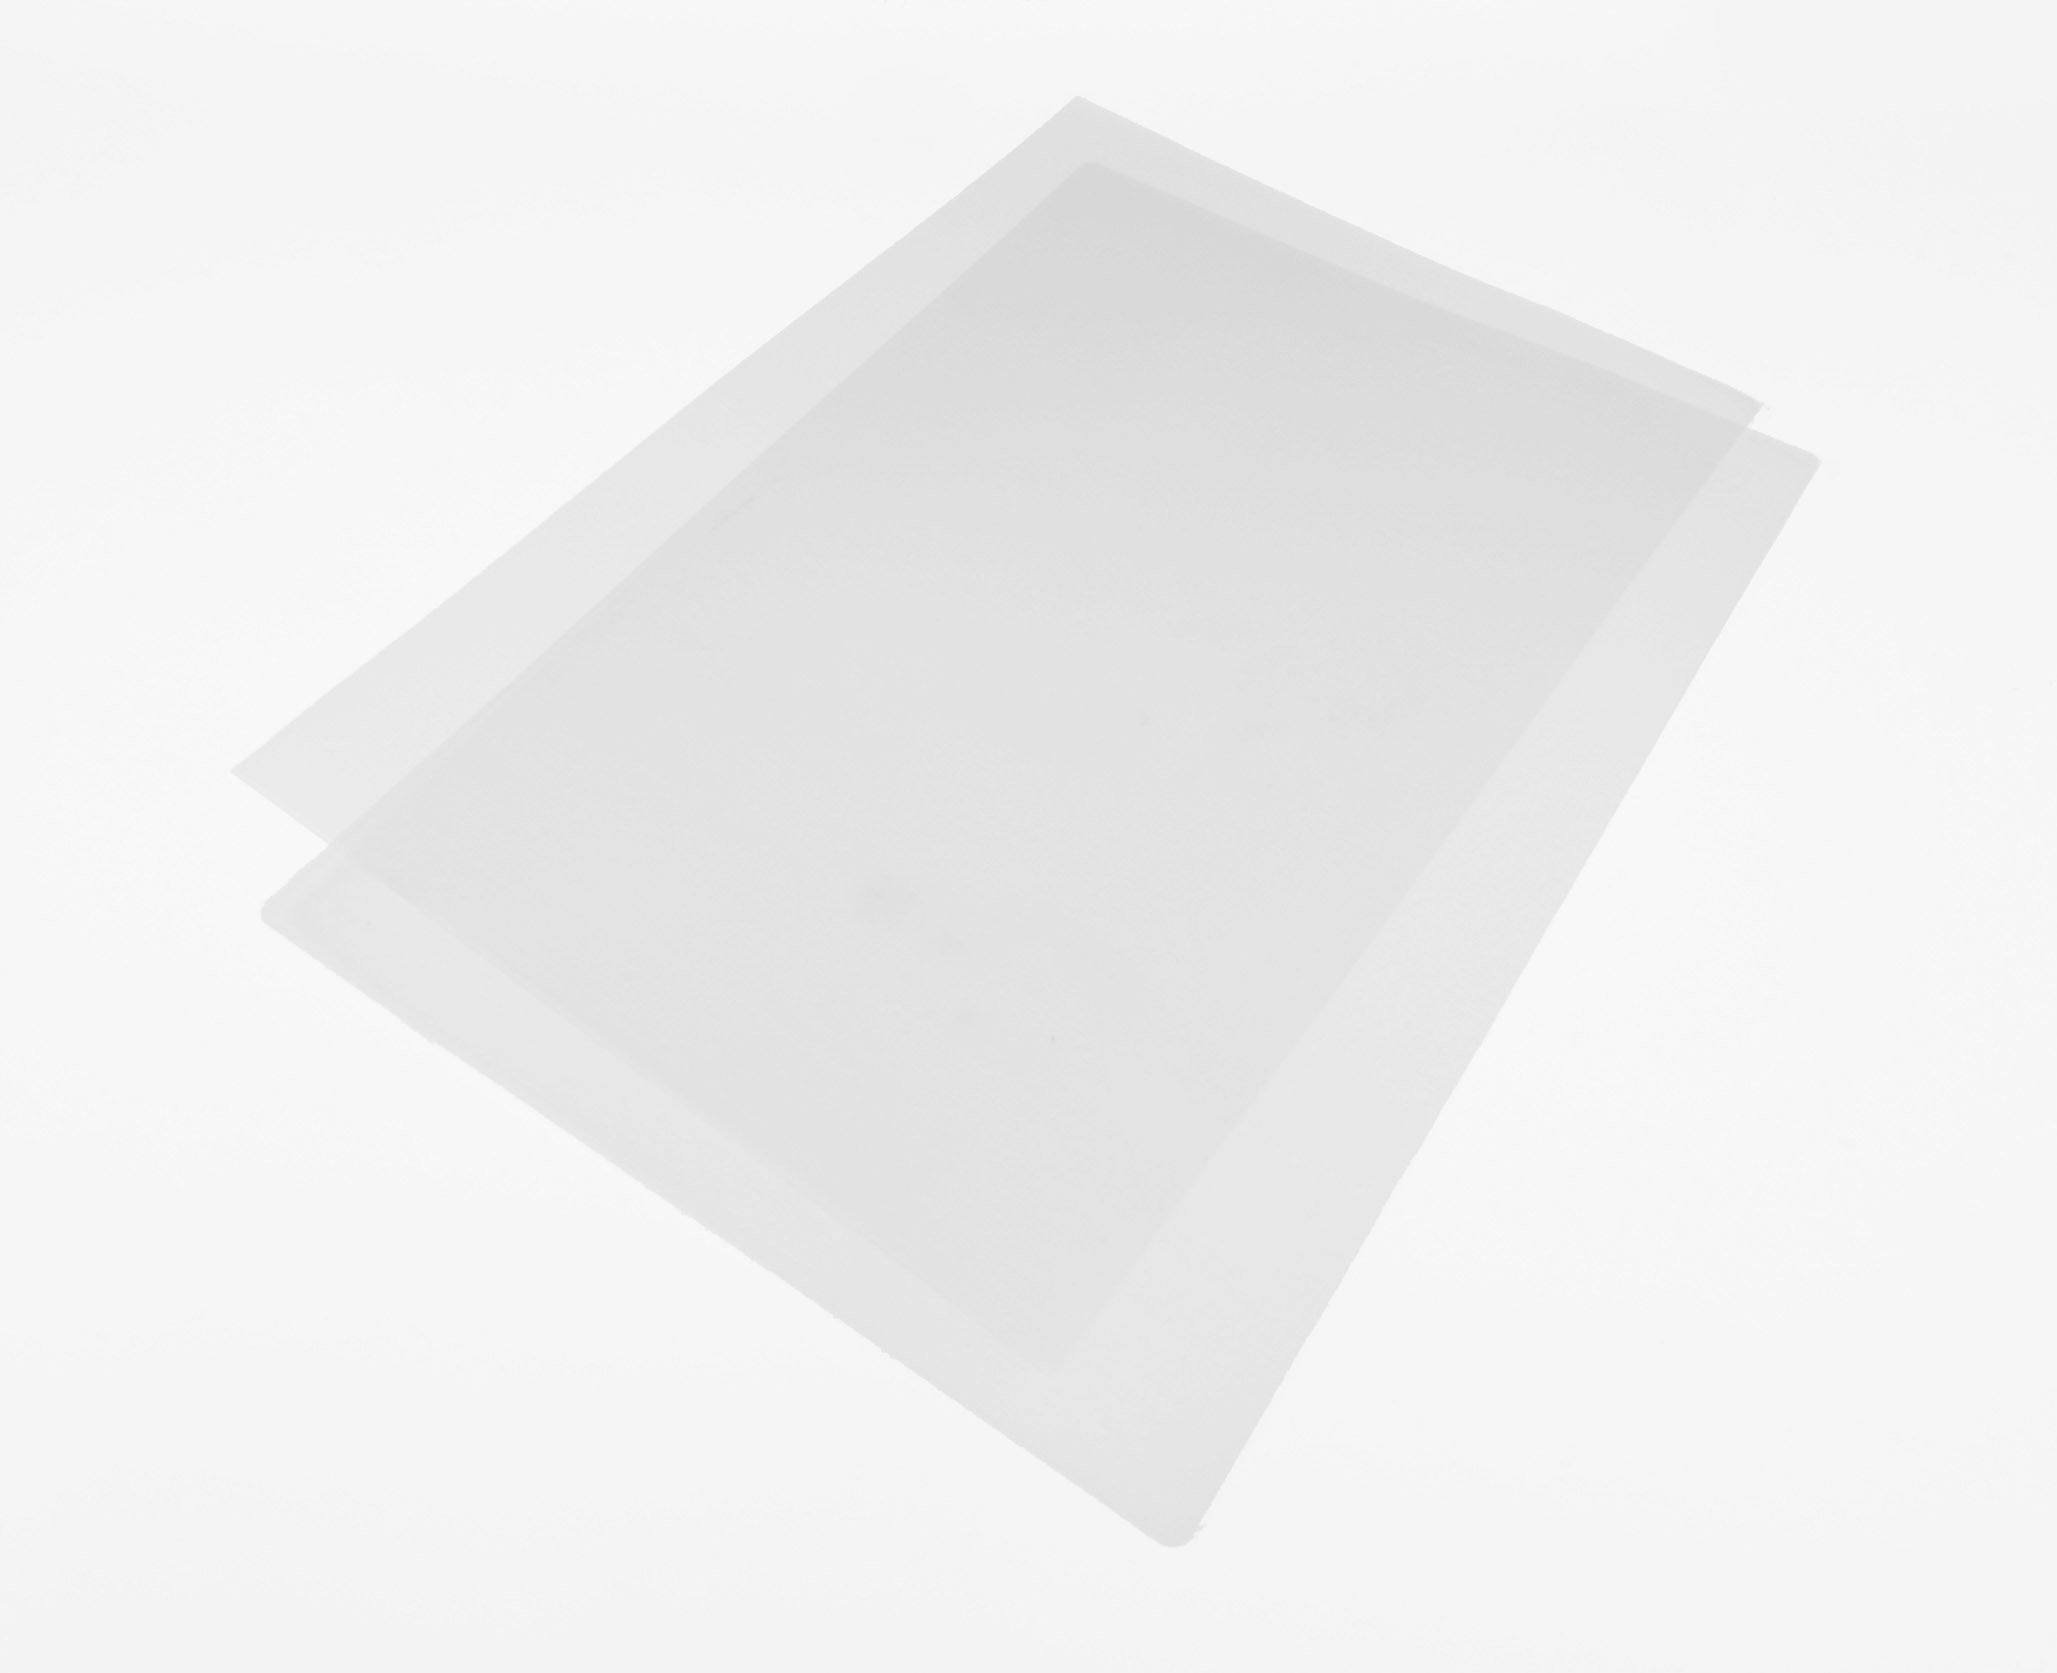 R&R Lotion SD-SHEETS Static Dissipative Laminating Sheet, 11'' Length x 8-1/2'' Width (Pack of 100 Sheets)